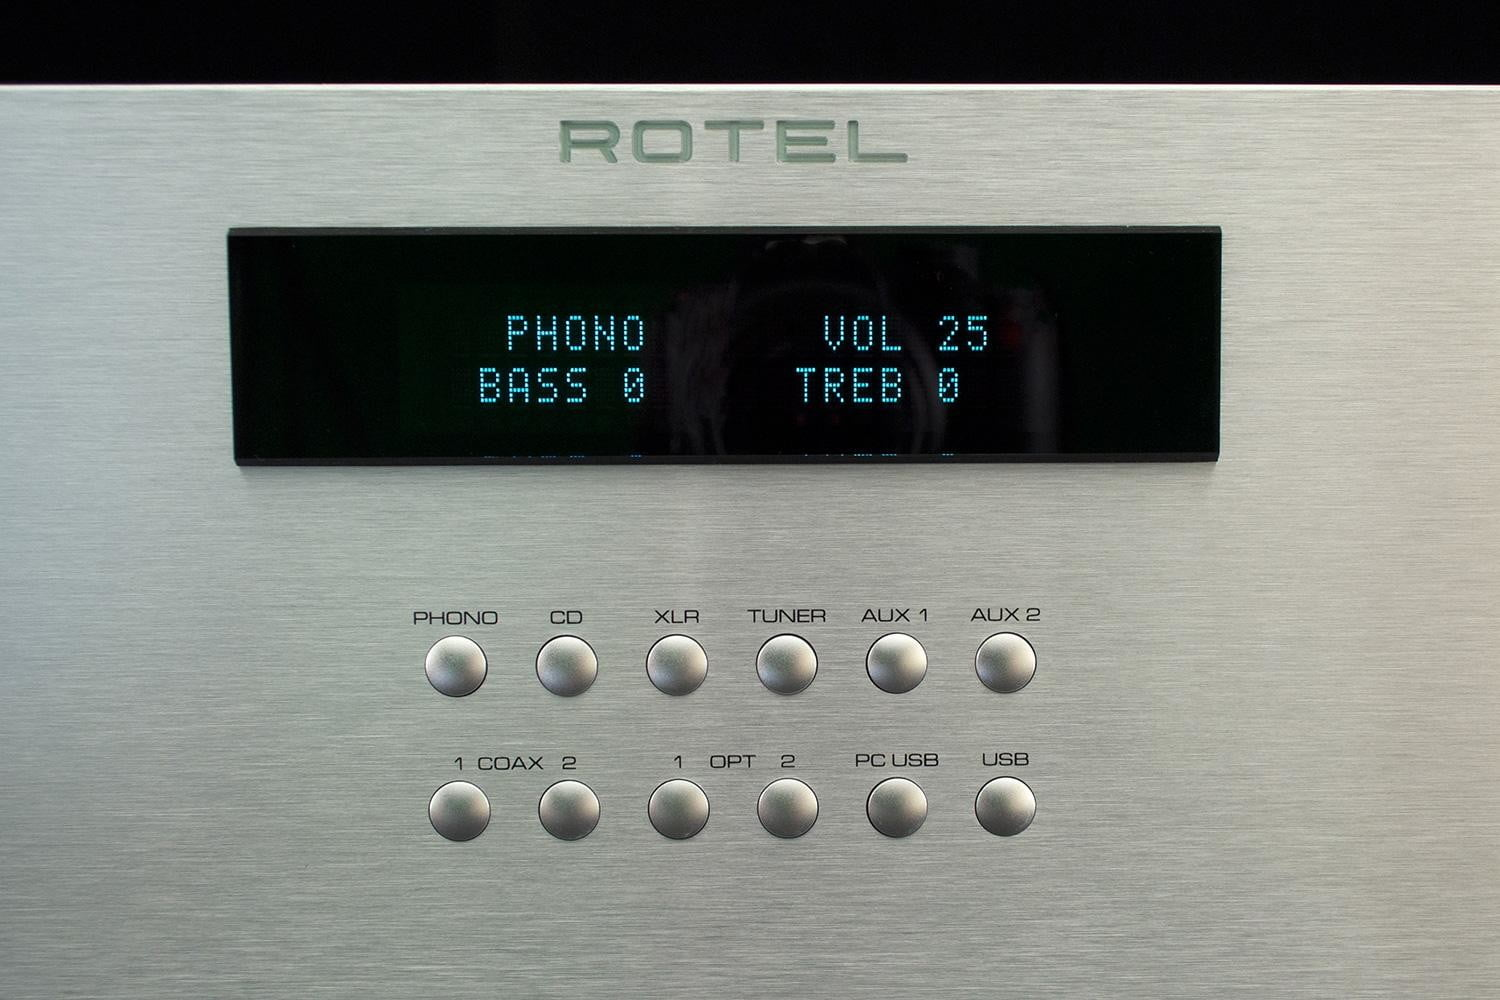 rotel ra 1570 review receiver display1